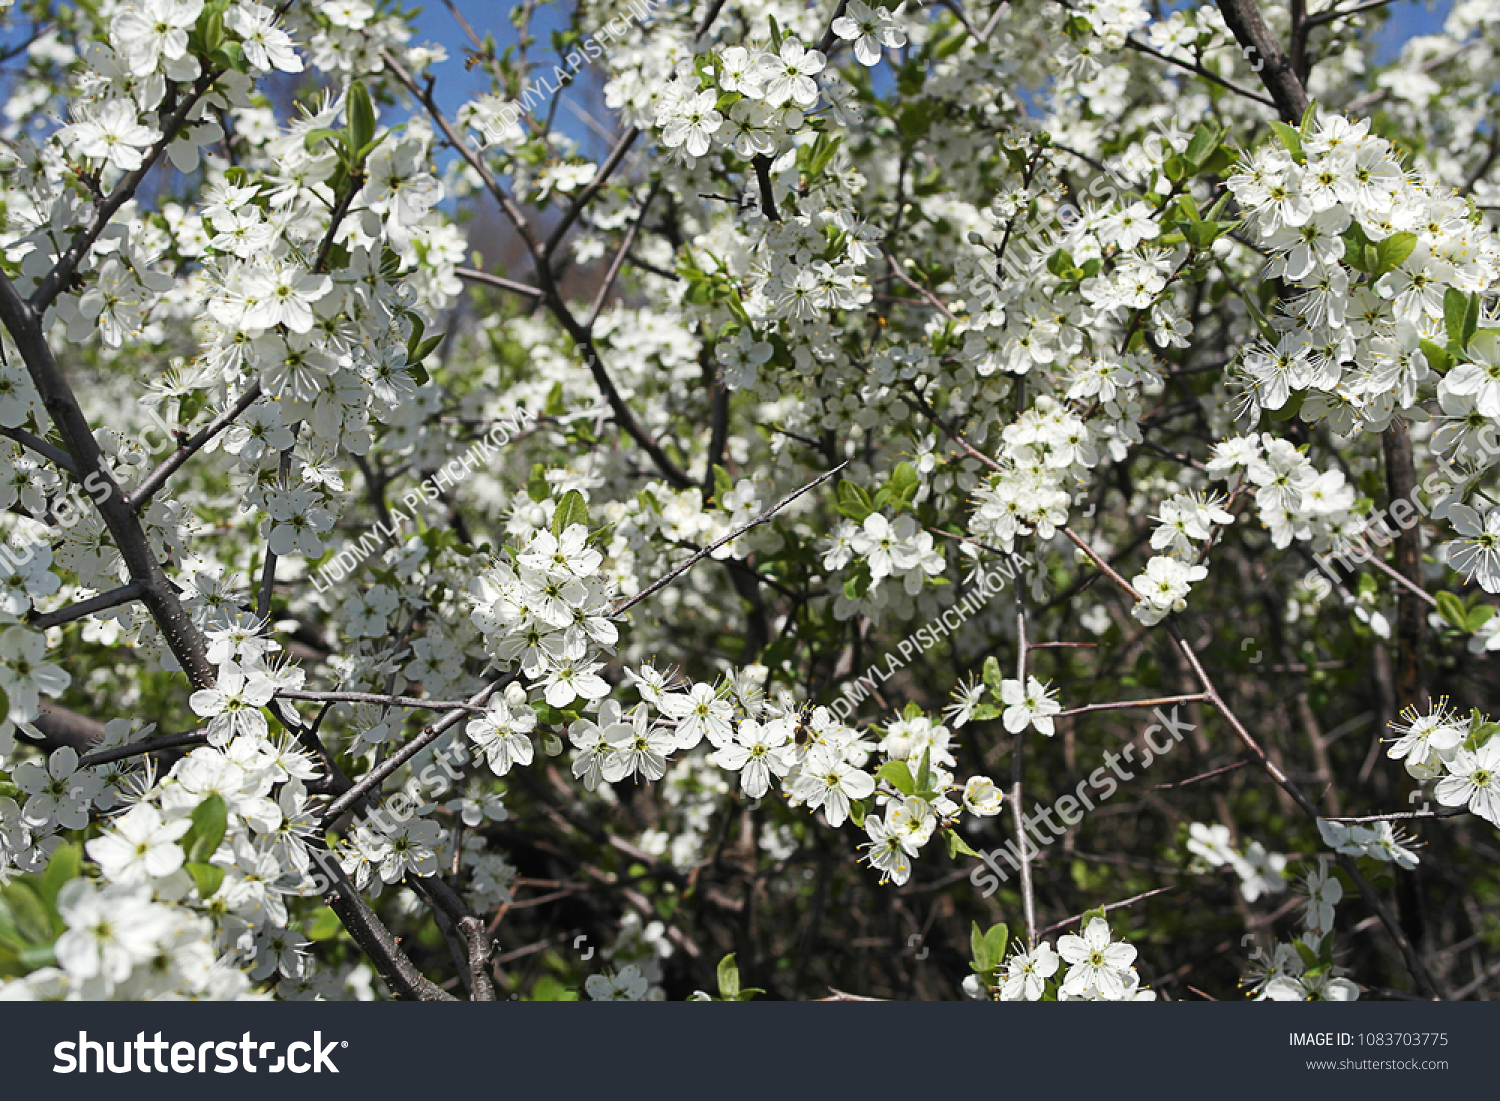 Huge Spines Hidden Delicate White Flowers Stock Photo 100 Legal